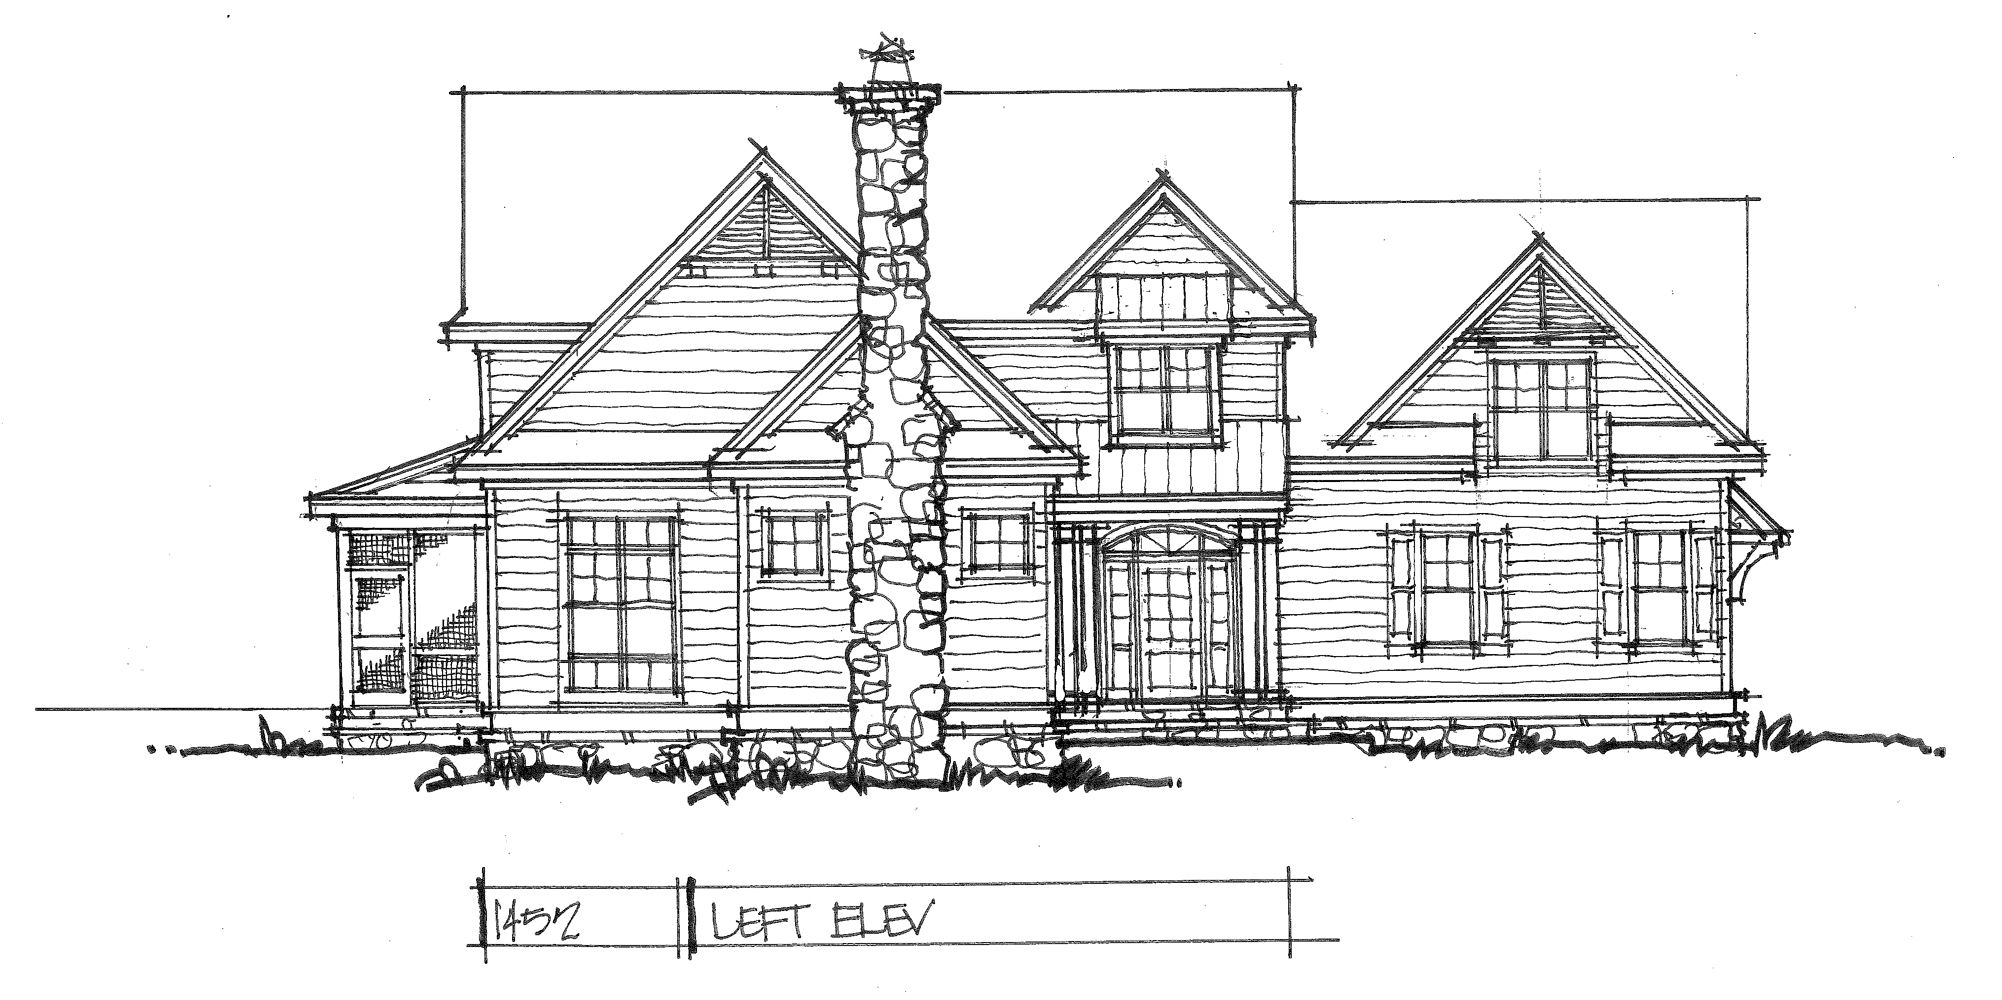 HOUSE PLAN NOW IN PROGRESS House Architecture Design And - How to check elevation